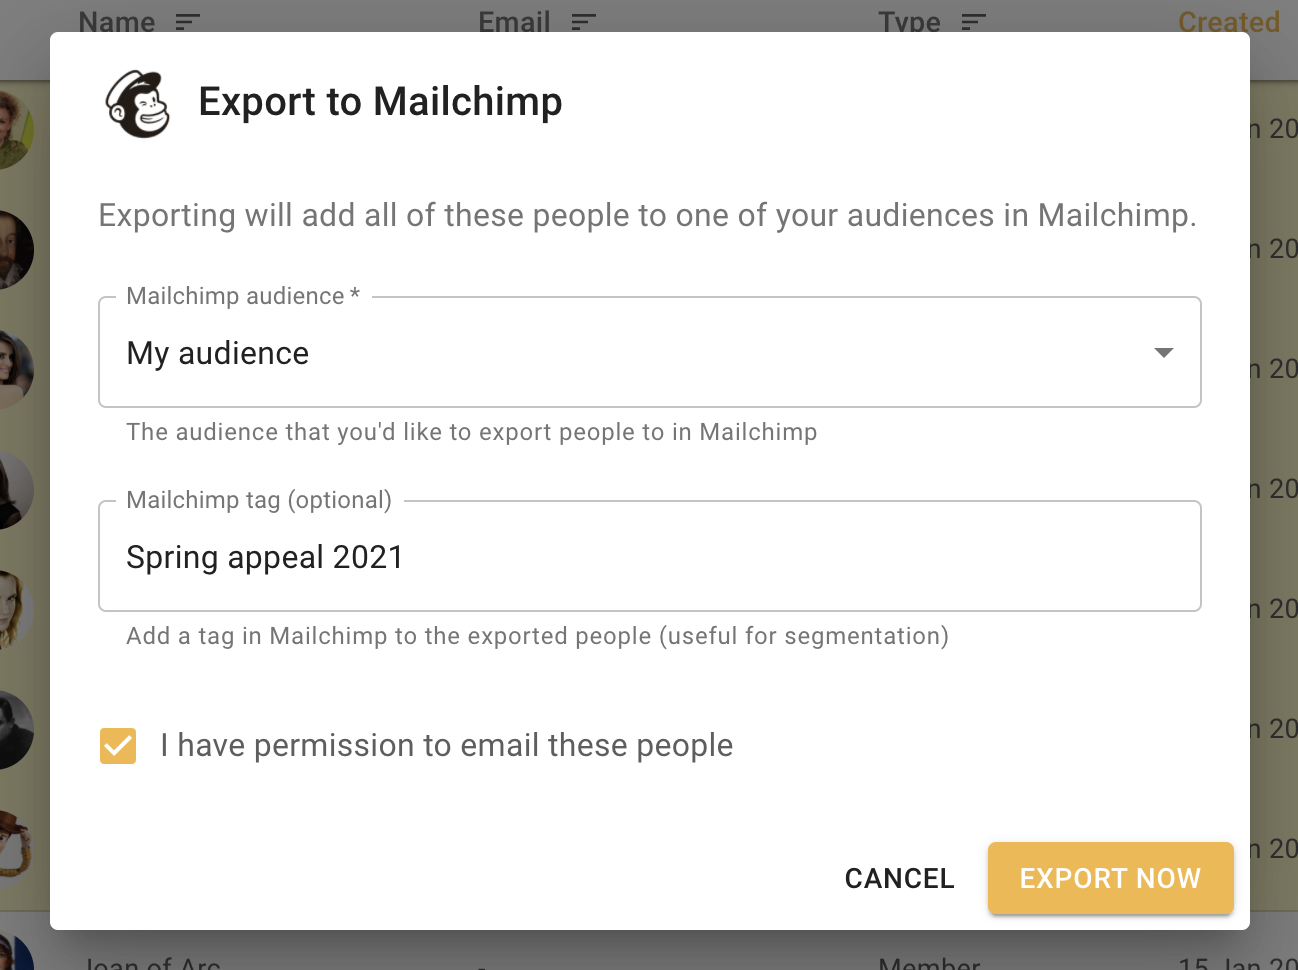 Export to Mailchimp audience